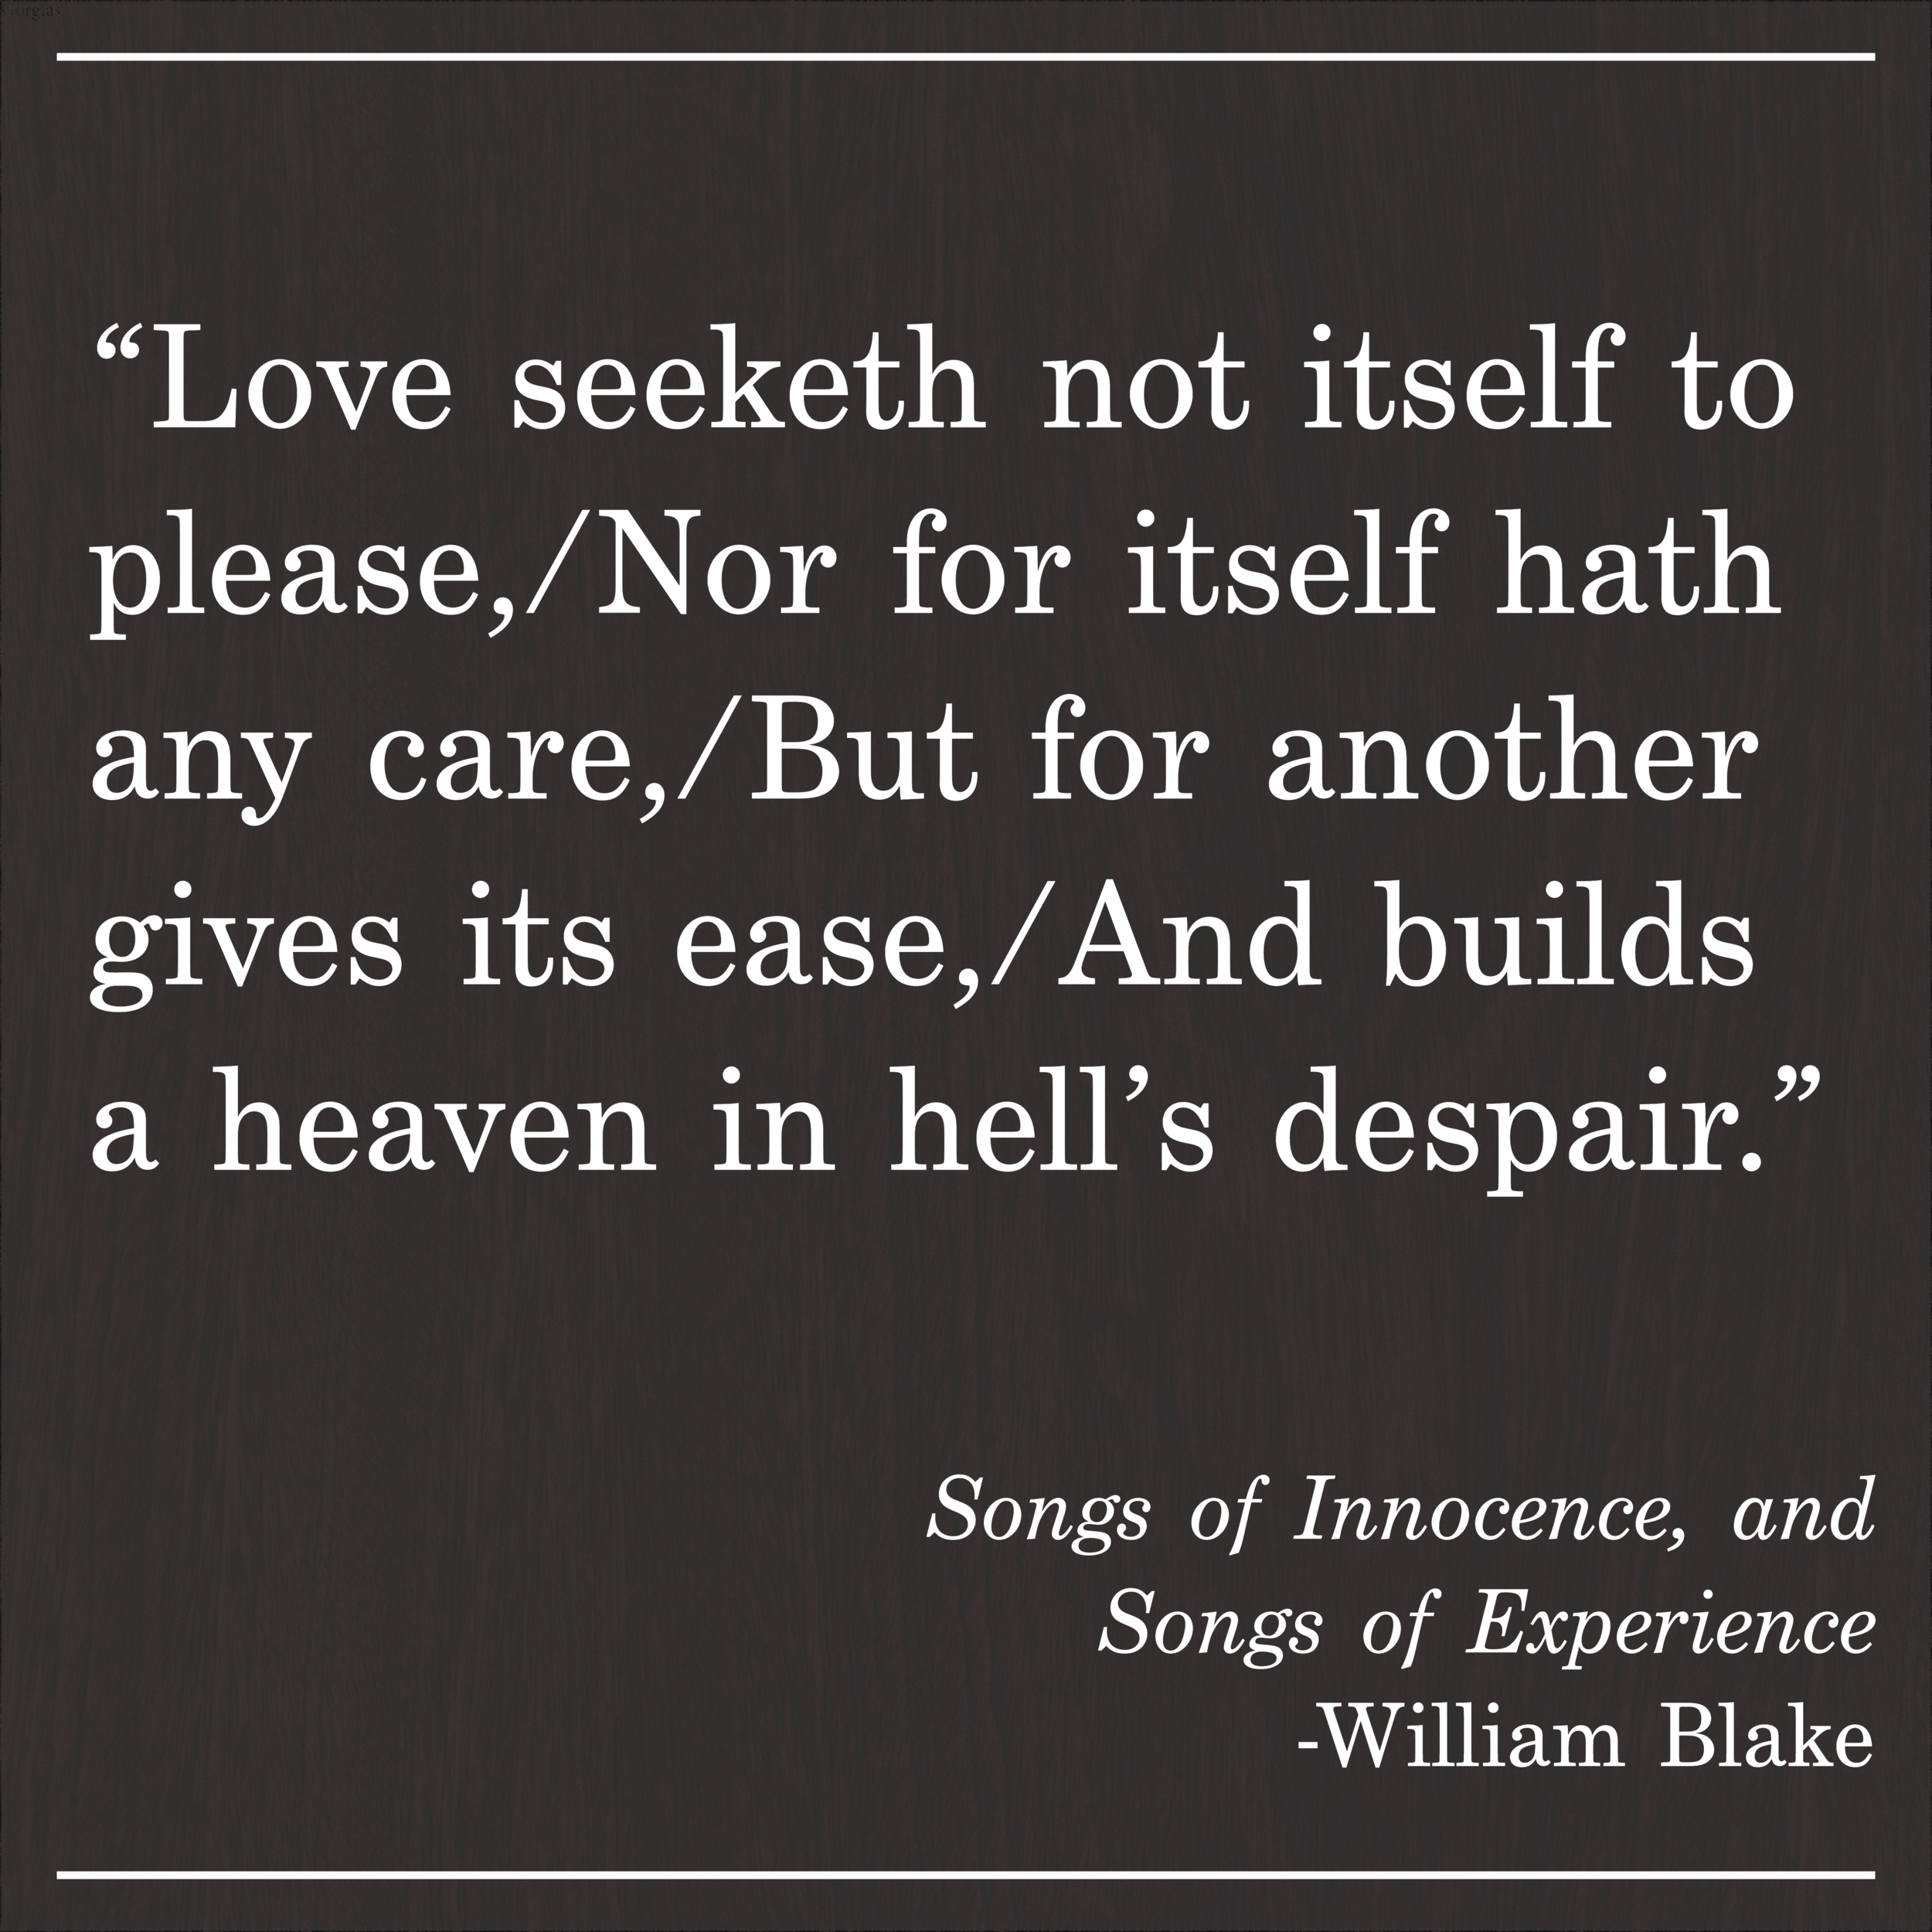 Daily Quote Songs of Innocence and Songs of Experience by William Blake